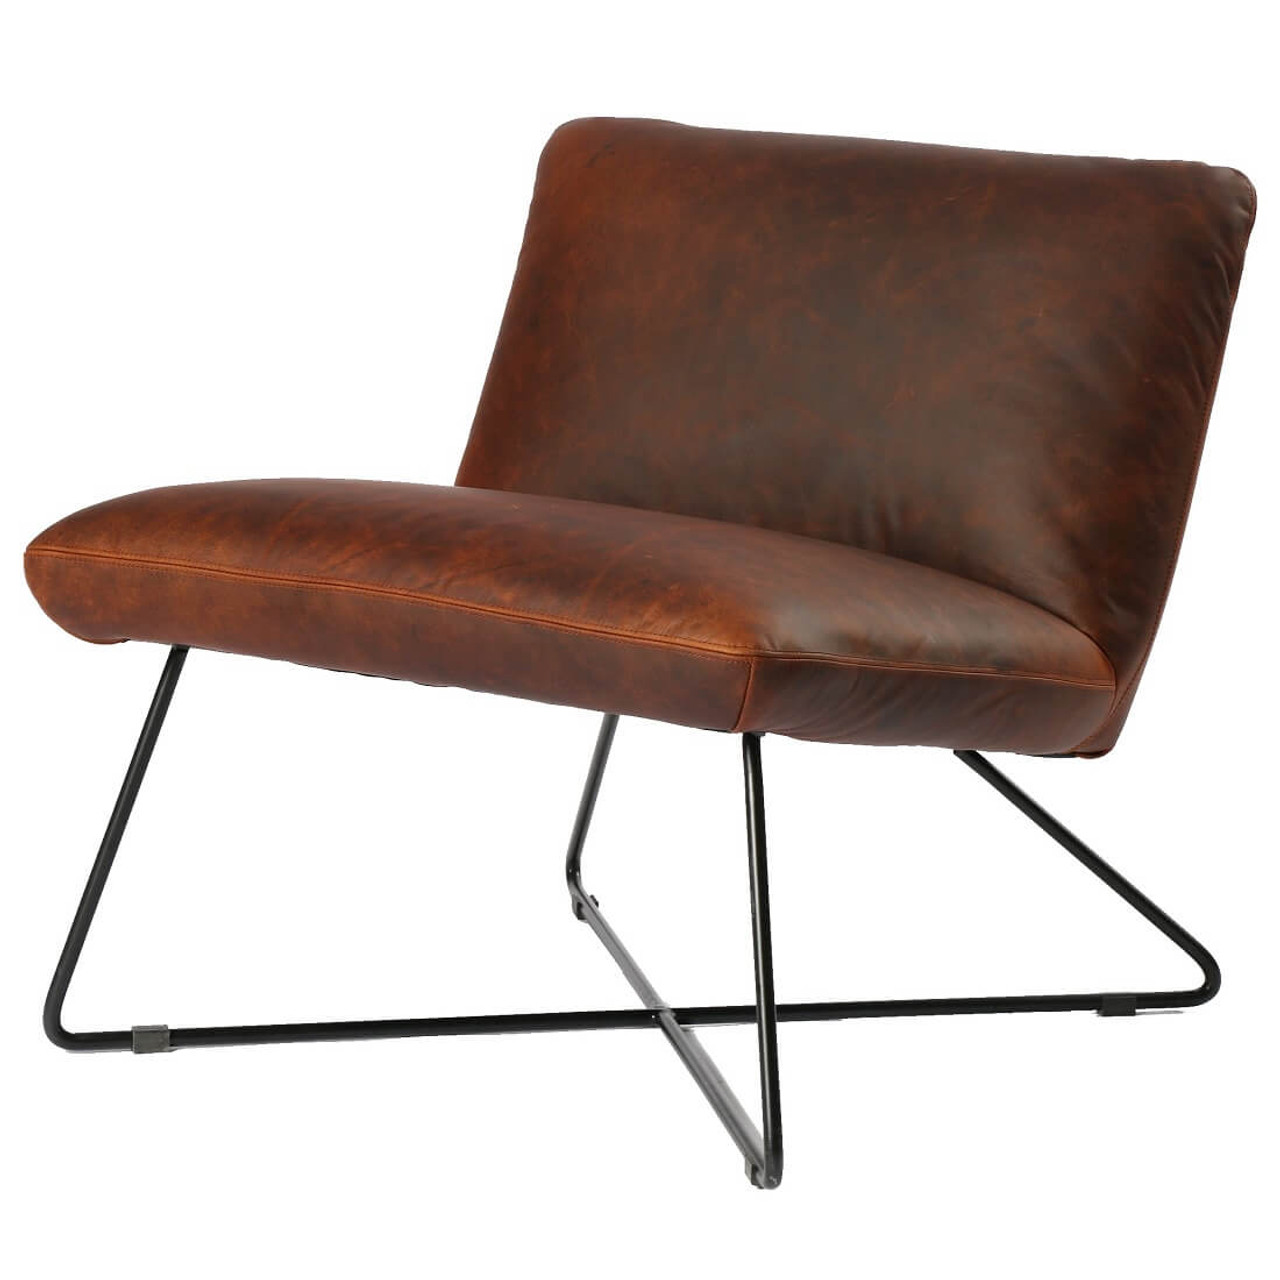 Miraculous District Copper Leather Lounge Chair Andrewgaddart Wooden Chair Designs For Living Room Andrewgaddartcom